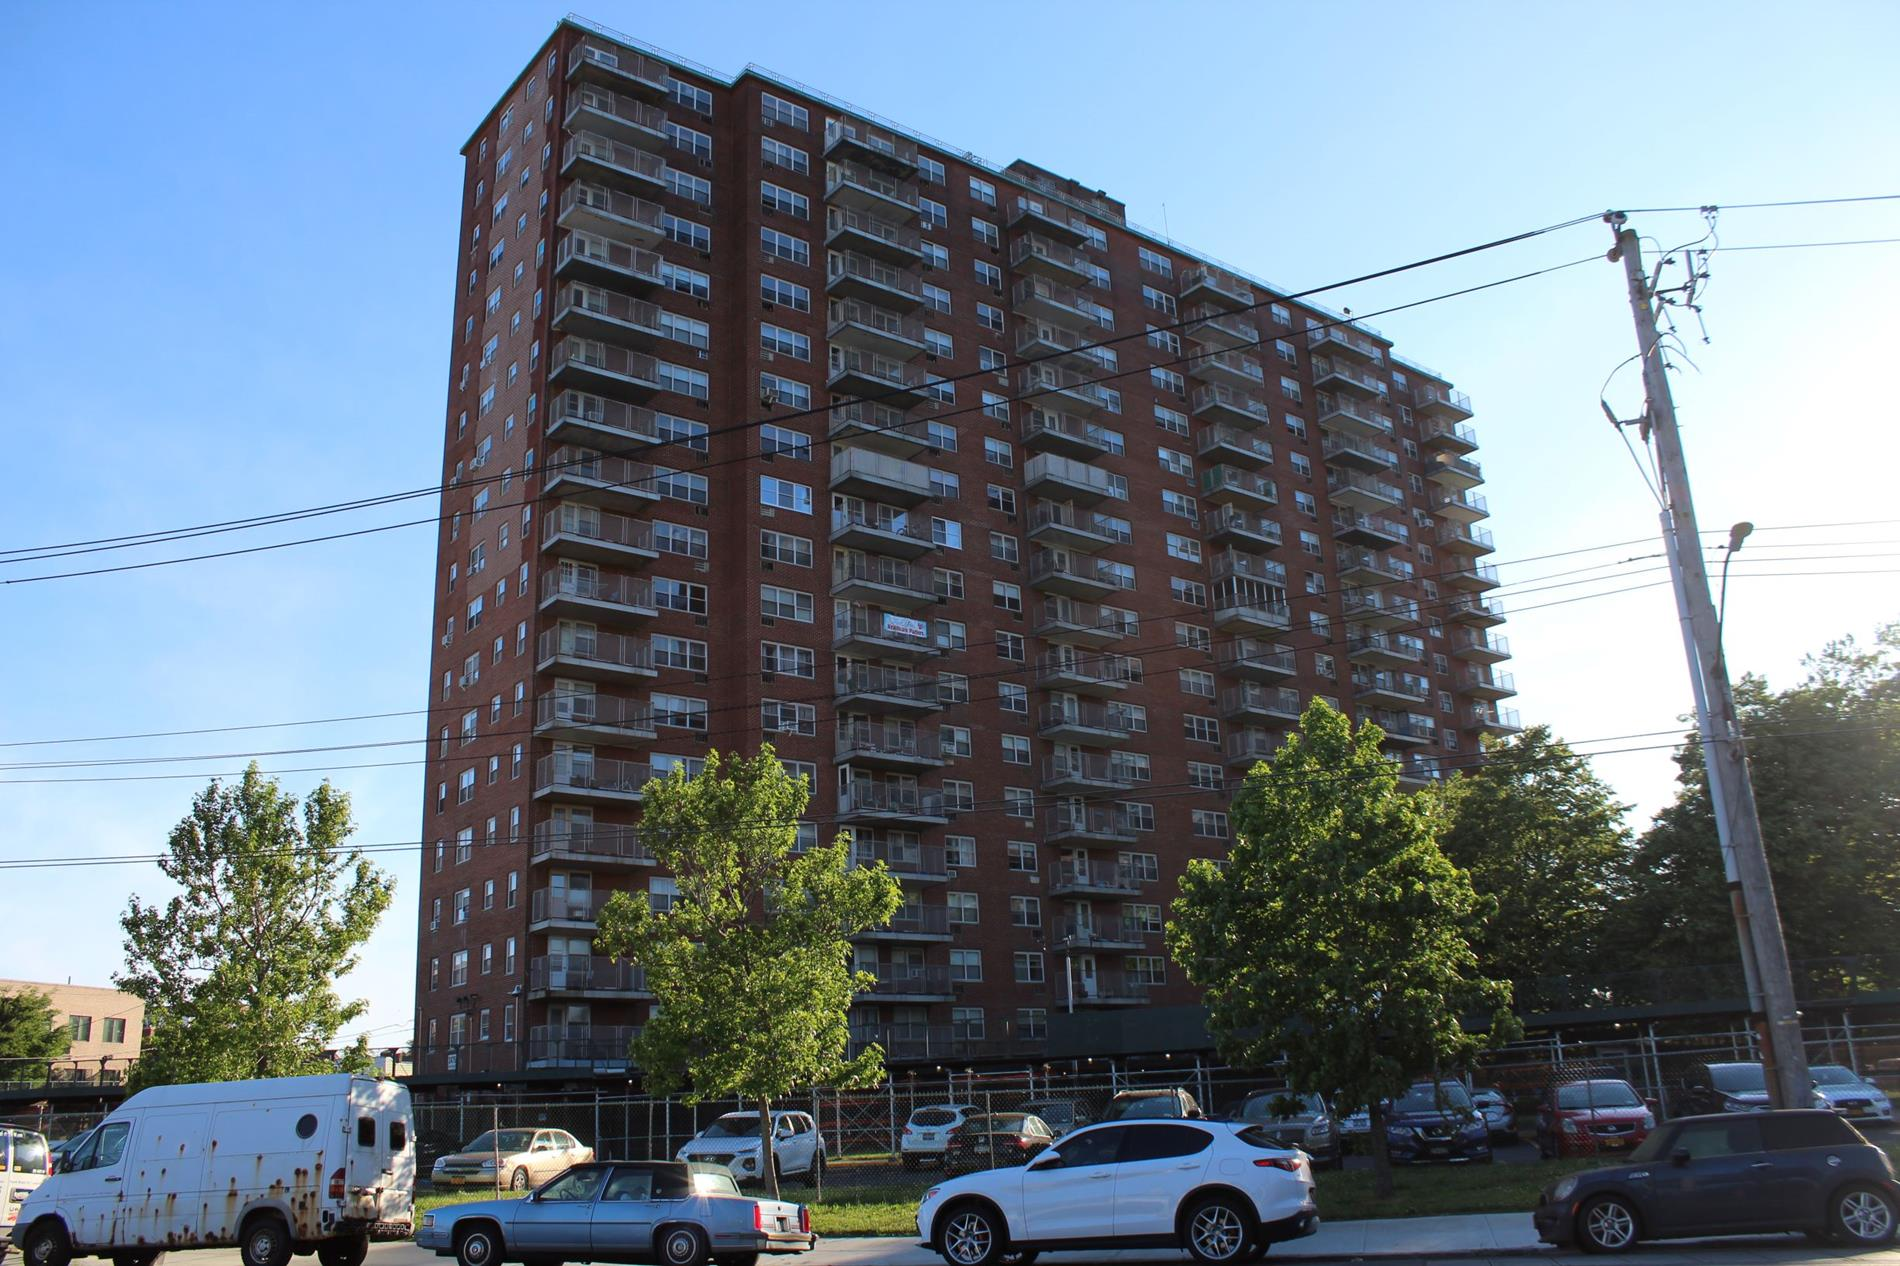 Apartment for sale at 2475 West 16th Street, Apt 13-C